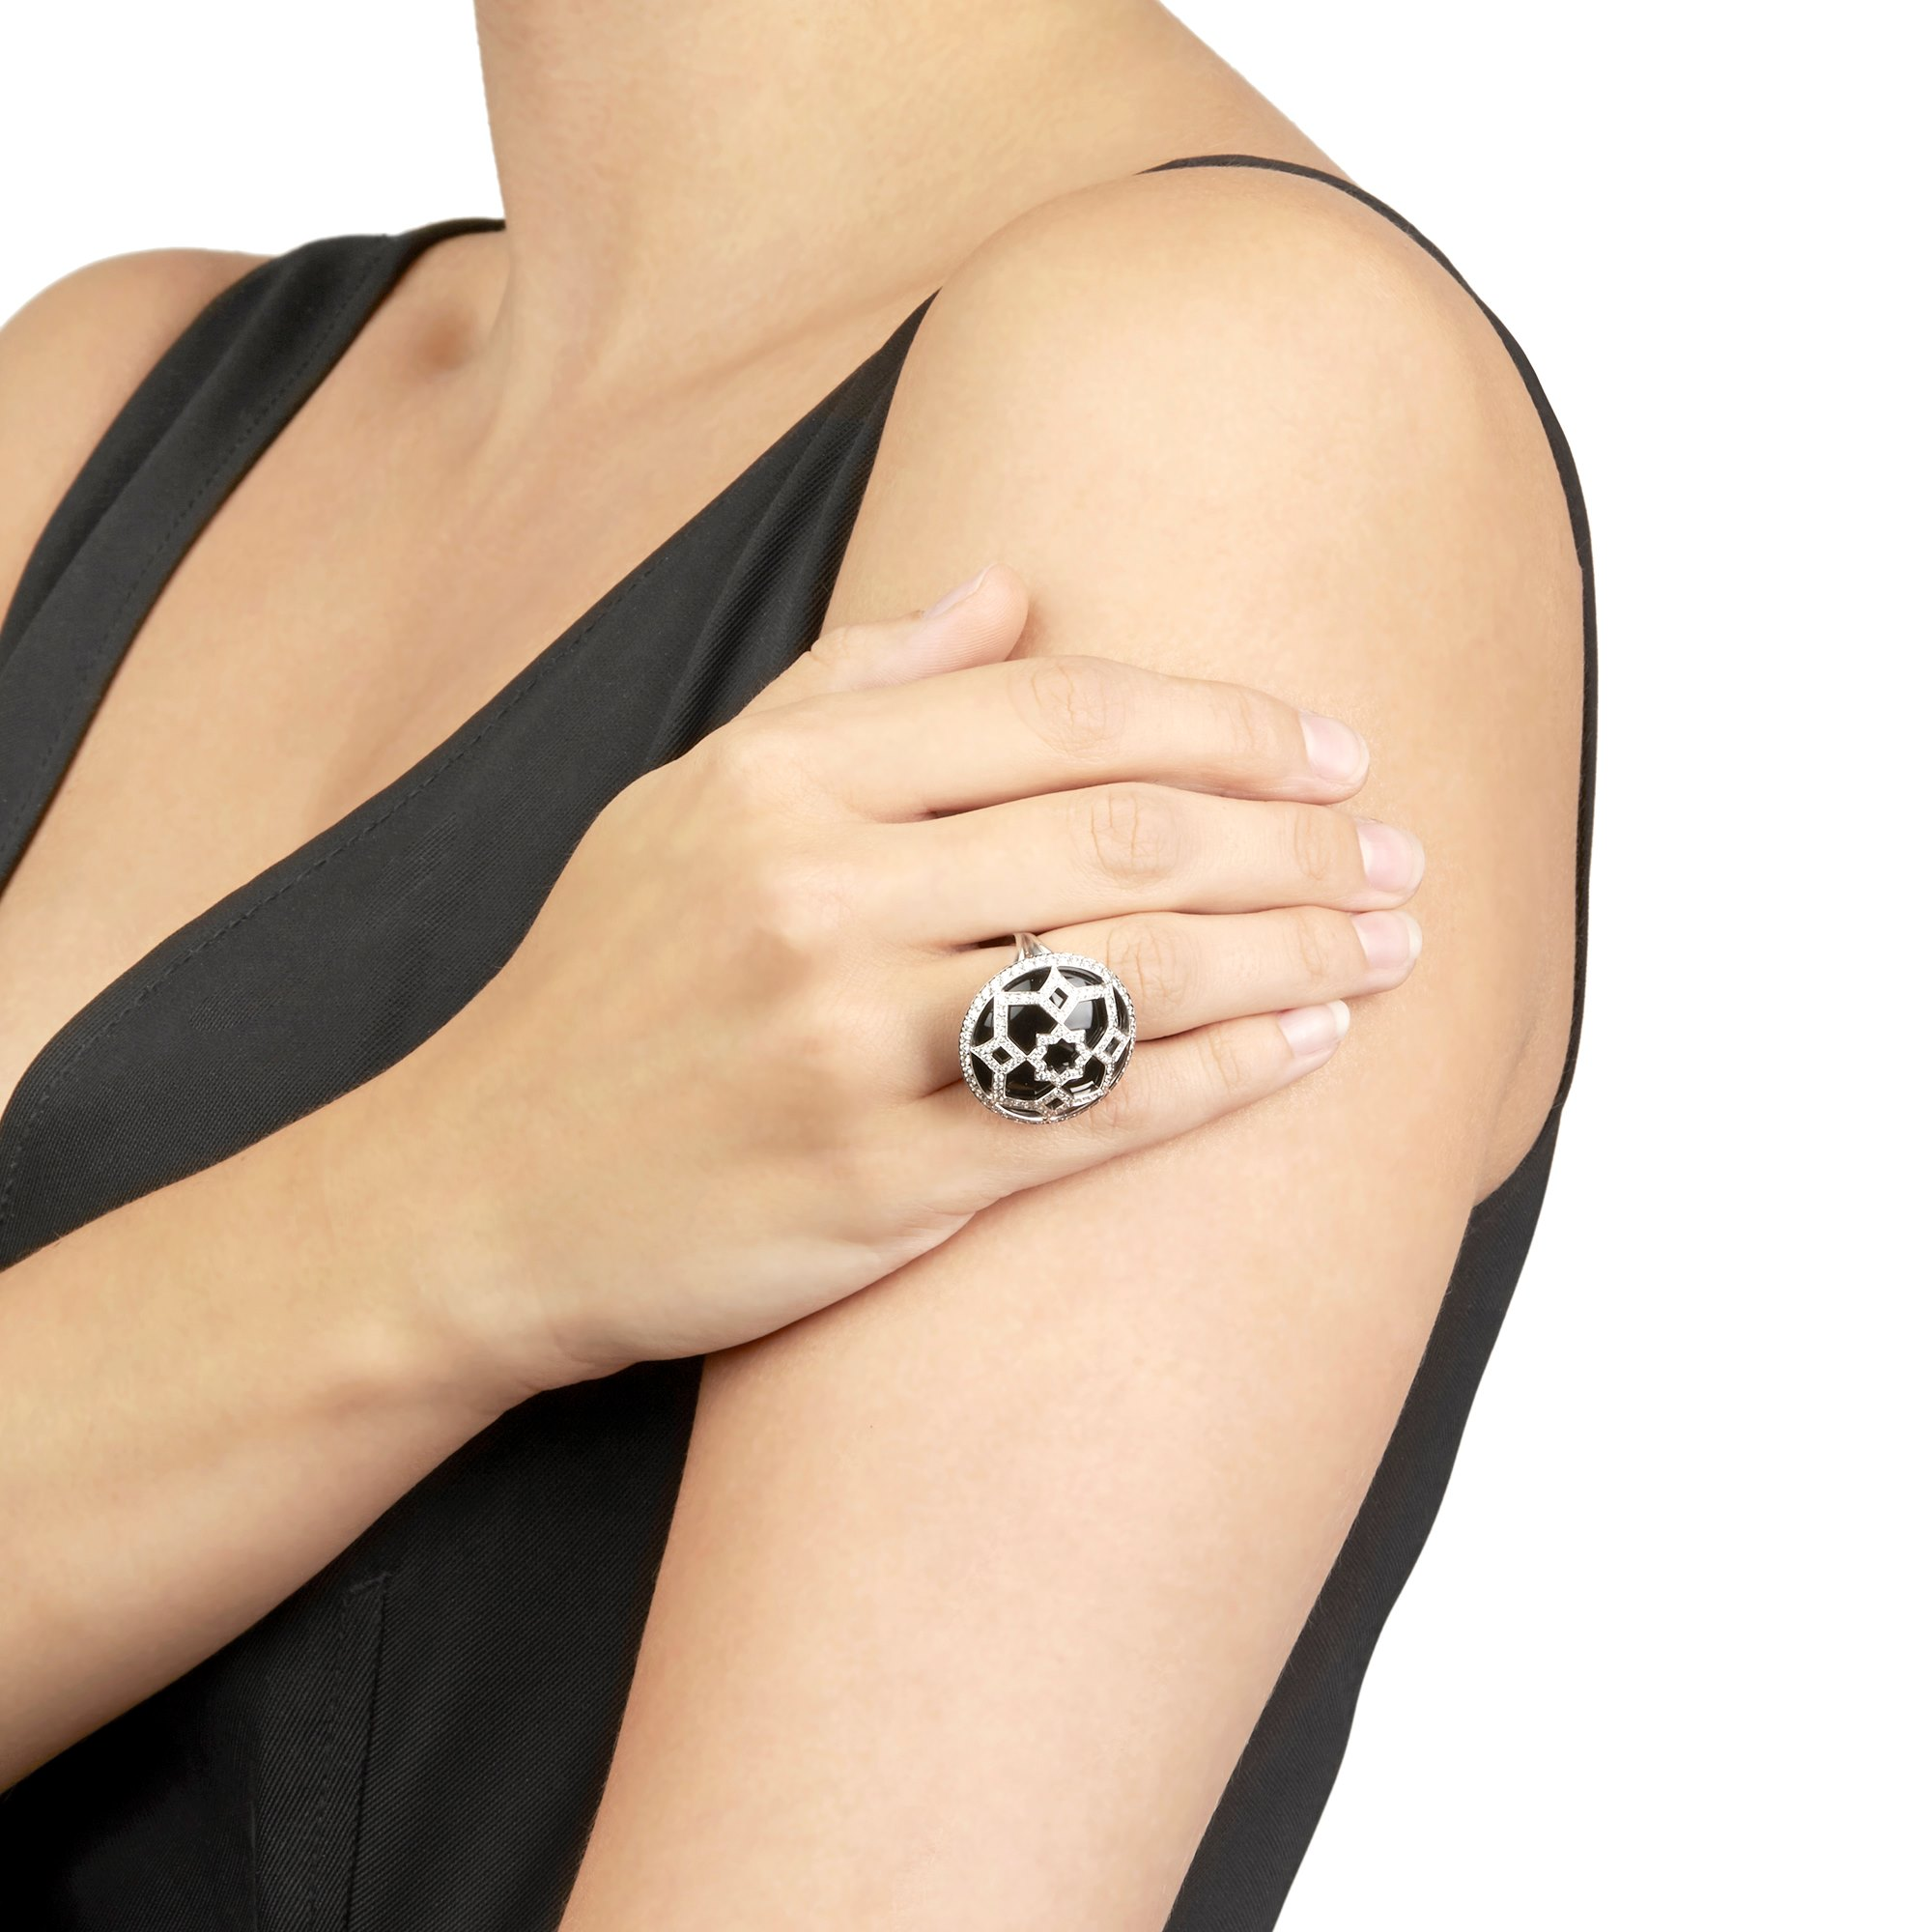 Tiffany & Co. 18k White Gold Onyx & Diamond Paloma Picasso Zellige Ring